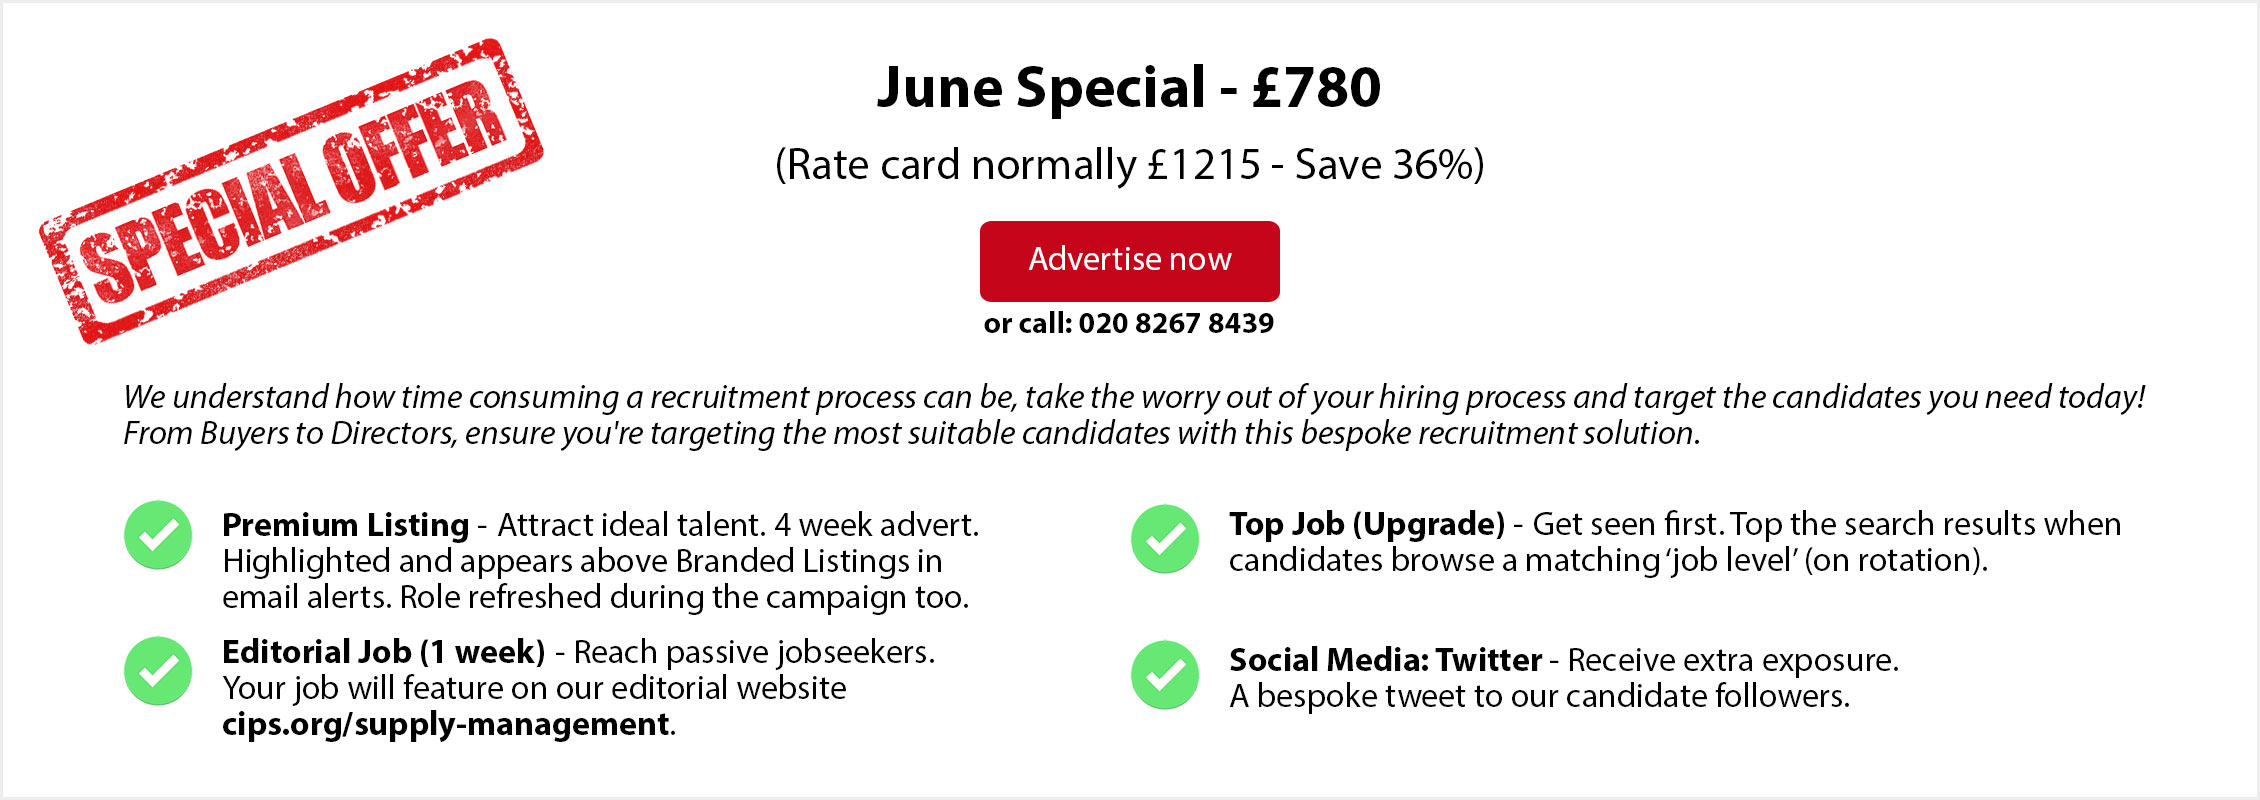 Special Offer. June Special - £780. (Rate card normally £1215 - Save 36%). ADVERTISE NOW or call: 020 8267 8439. From Buyers to Directors, ensure you're targeting the most suitable candidates with this bespoke recruitment solution. Premium Listing - Attract ideal talent. 4 week advert. Highlighted and appears above Branded Listings in email alerts. Role refreshed during the campaign too.   Editorial Job (1 week) - Reach passive jobseekers.  Your job will feature on our editorial website  cips.org/supply-management. Top Job (Upgrade) - Get seen first. Top the search results when candidates browse a matching 'job level' (on rotation). Social Media: Twitter - Receive extra exposure. A bespoke tweet to our candidate followers.